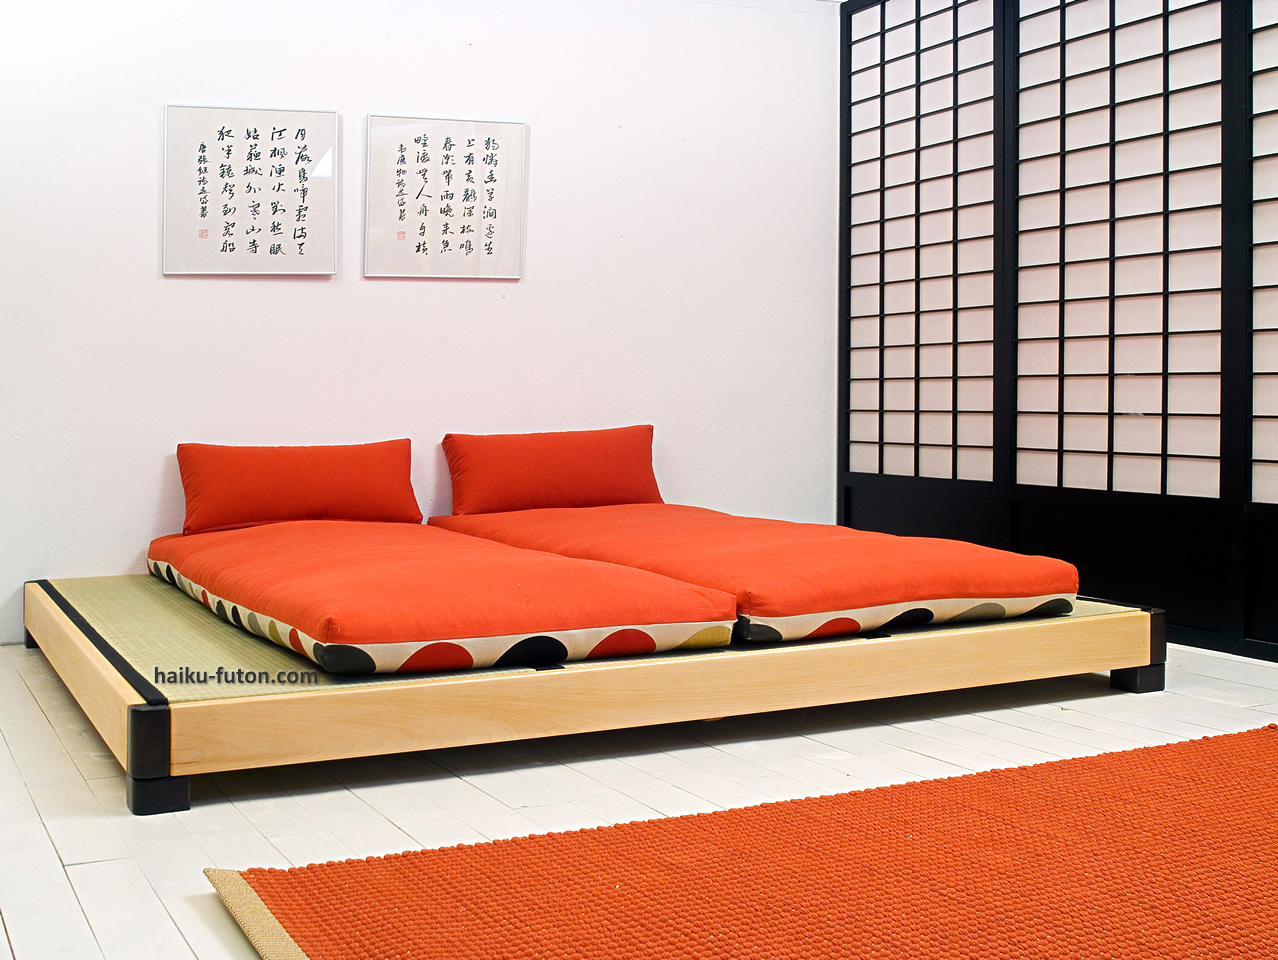 2 cama ocean tatamis haiku futon for Cama tatami